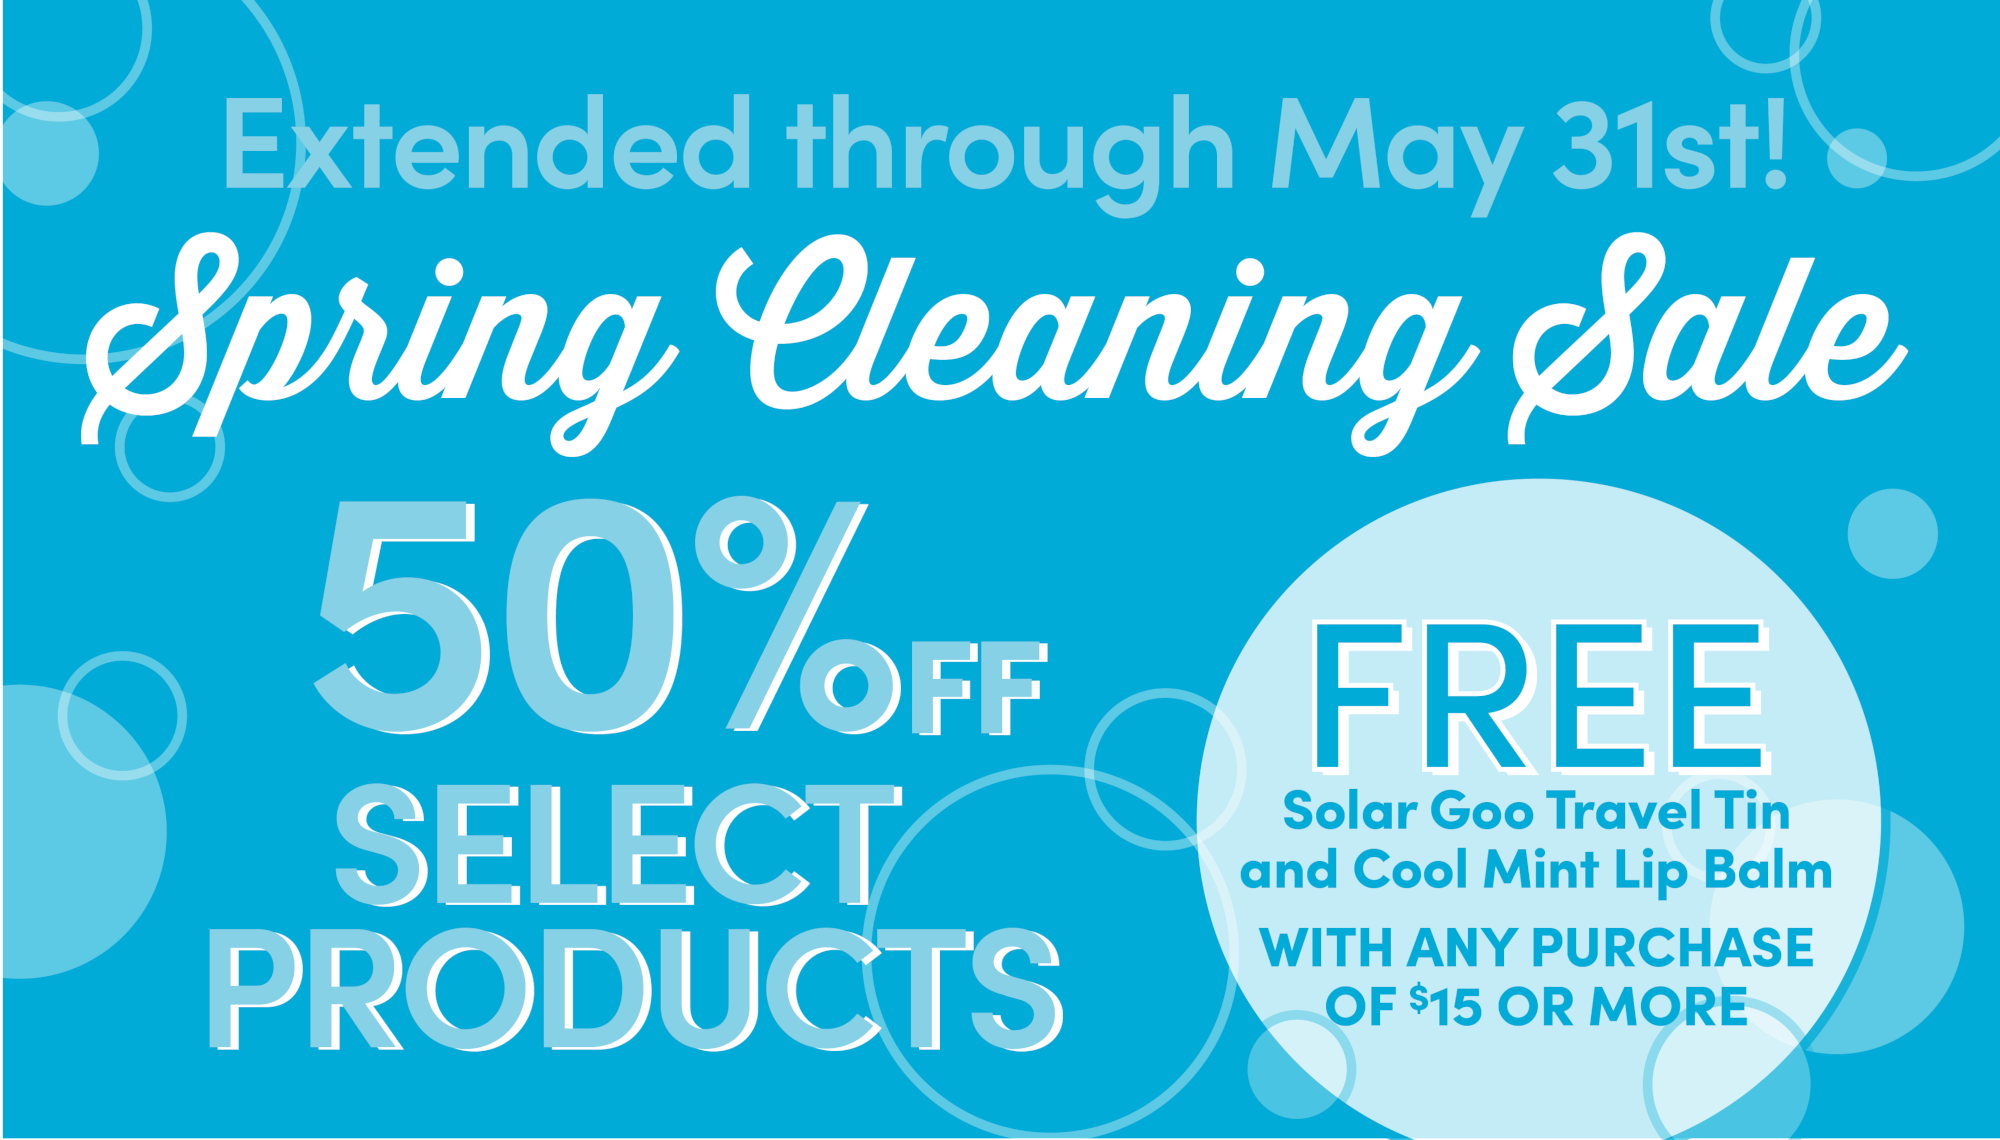 Spring Cleaning Sale. 50% Off select products.